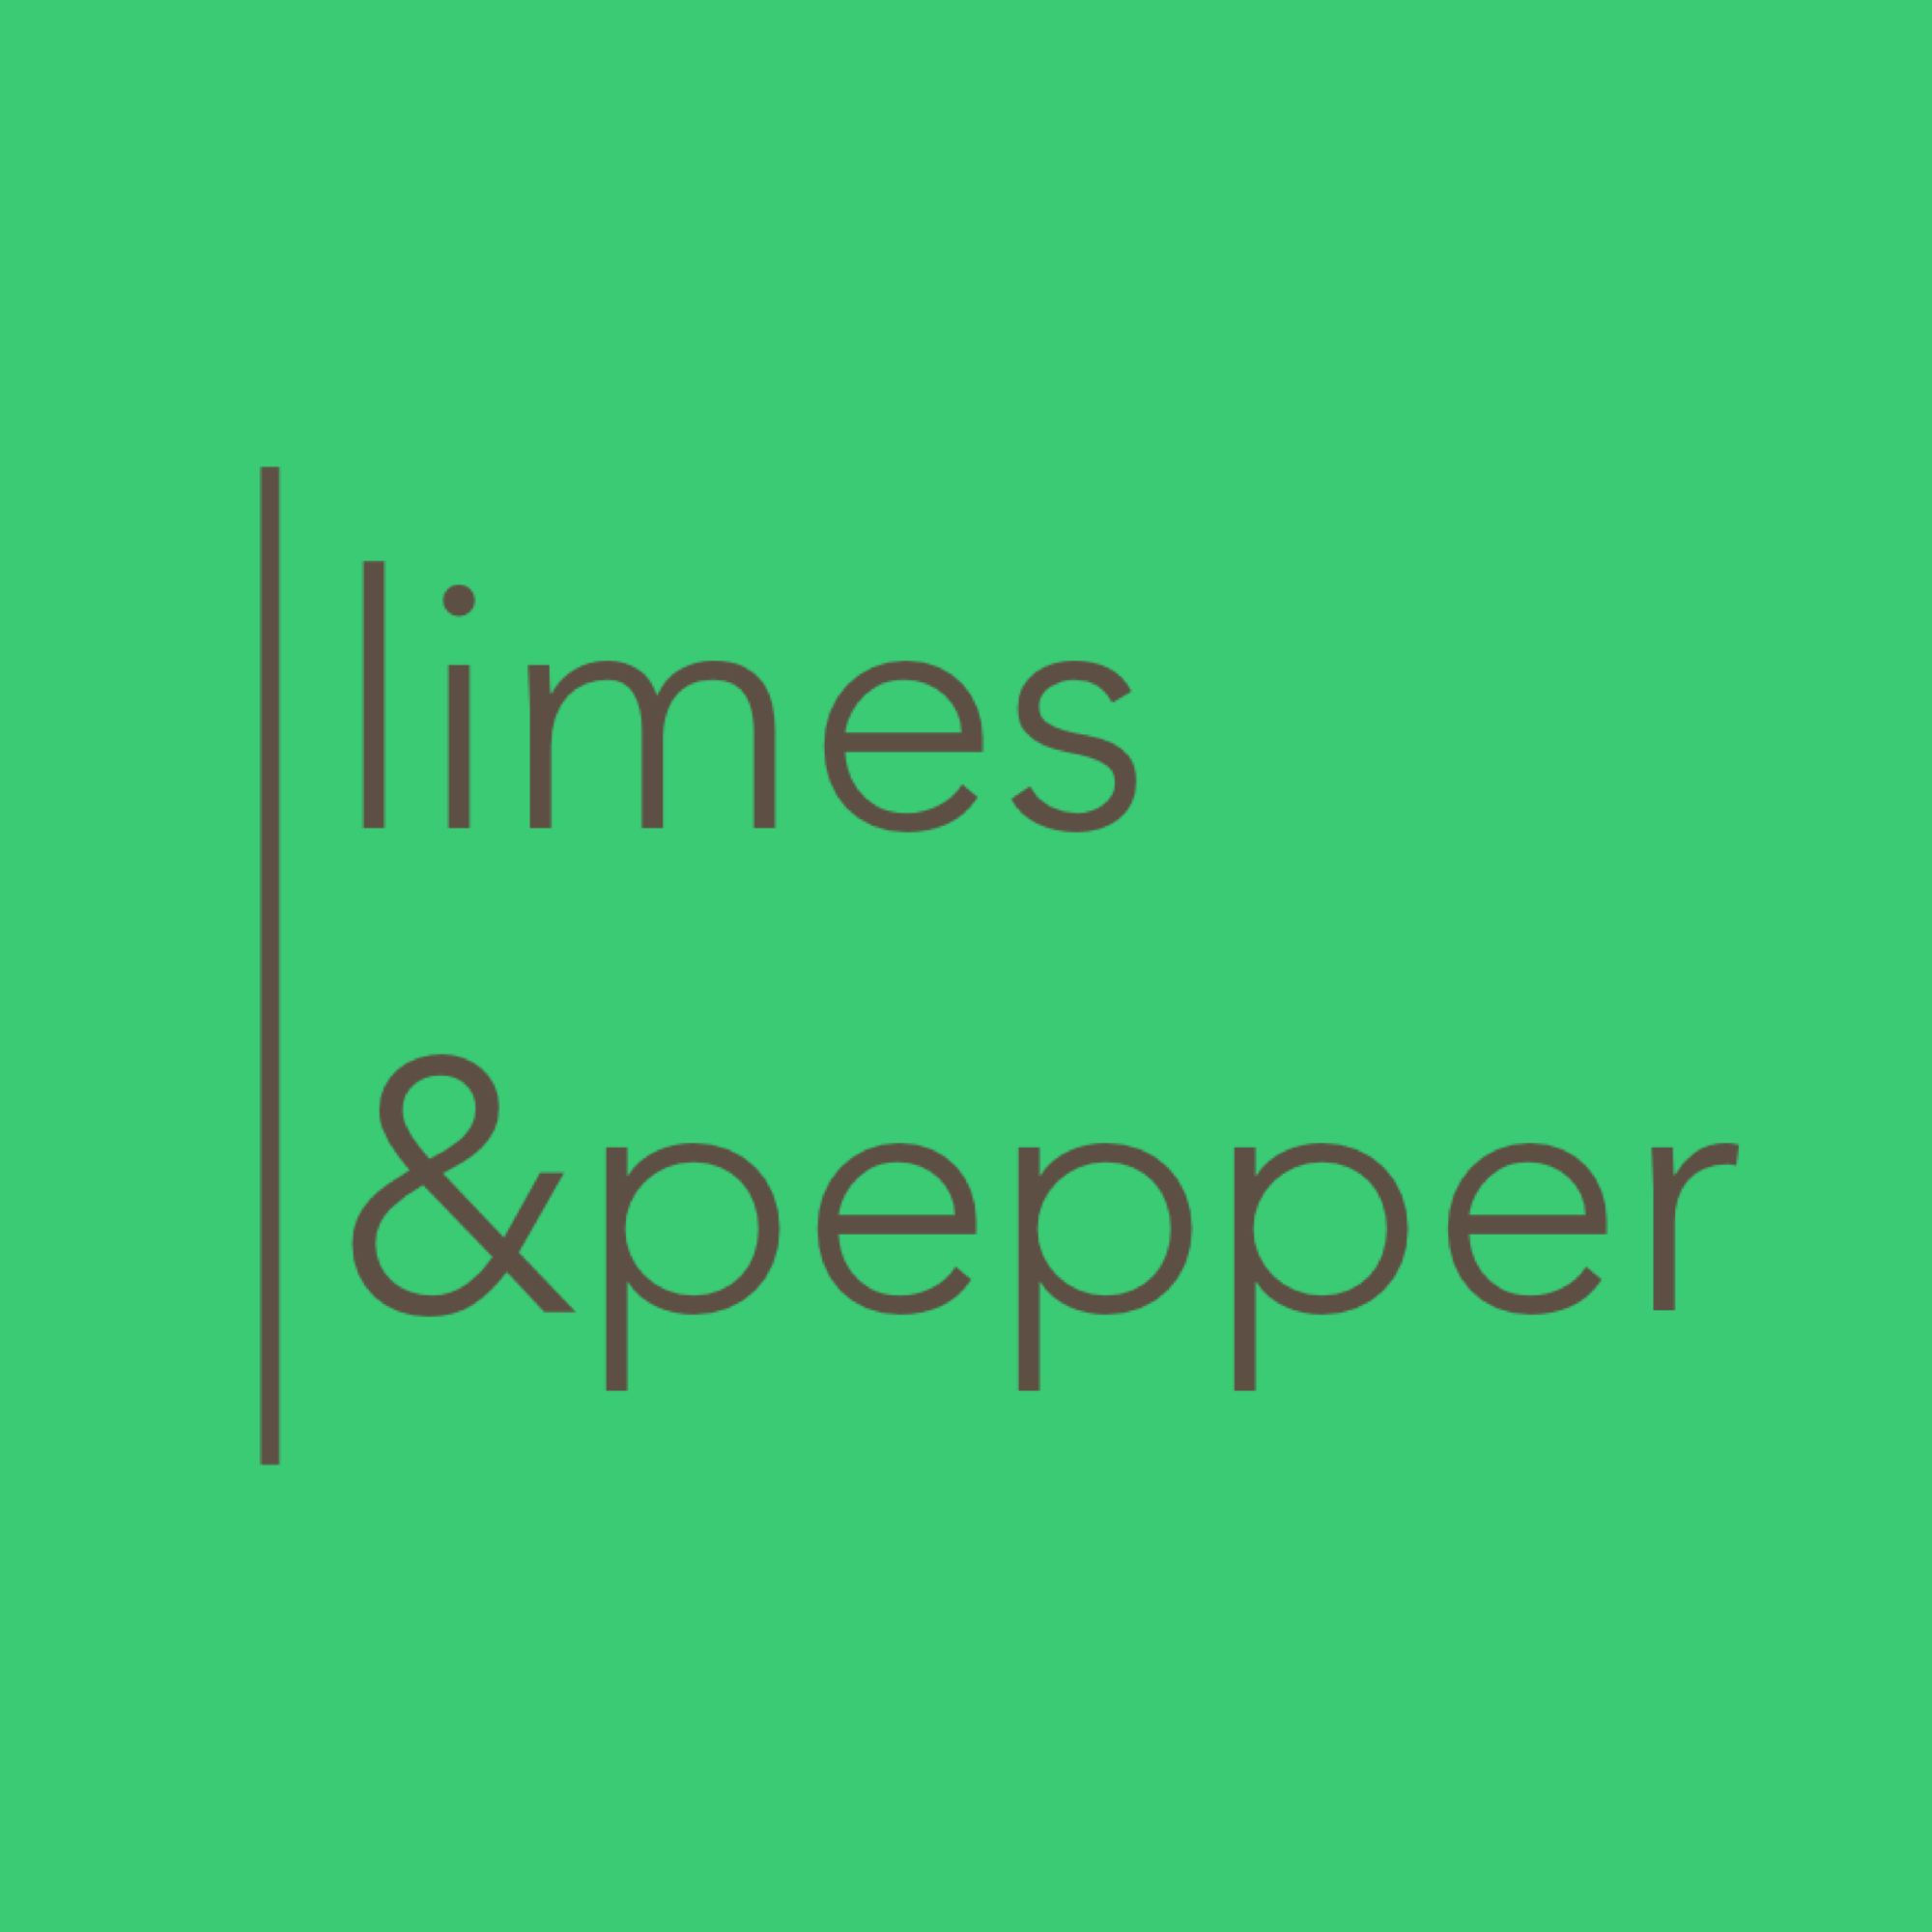 Image of limes&pepper